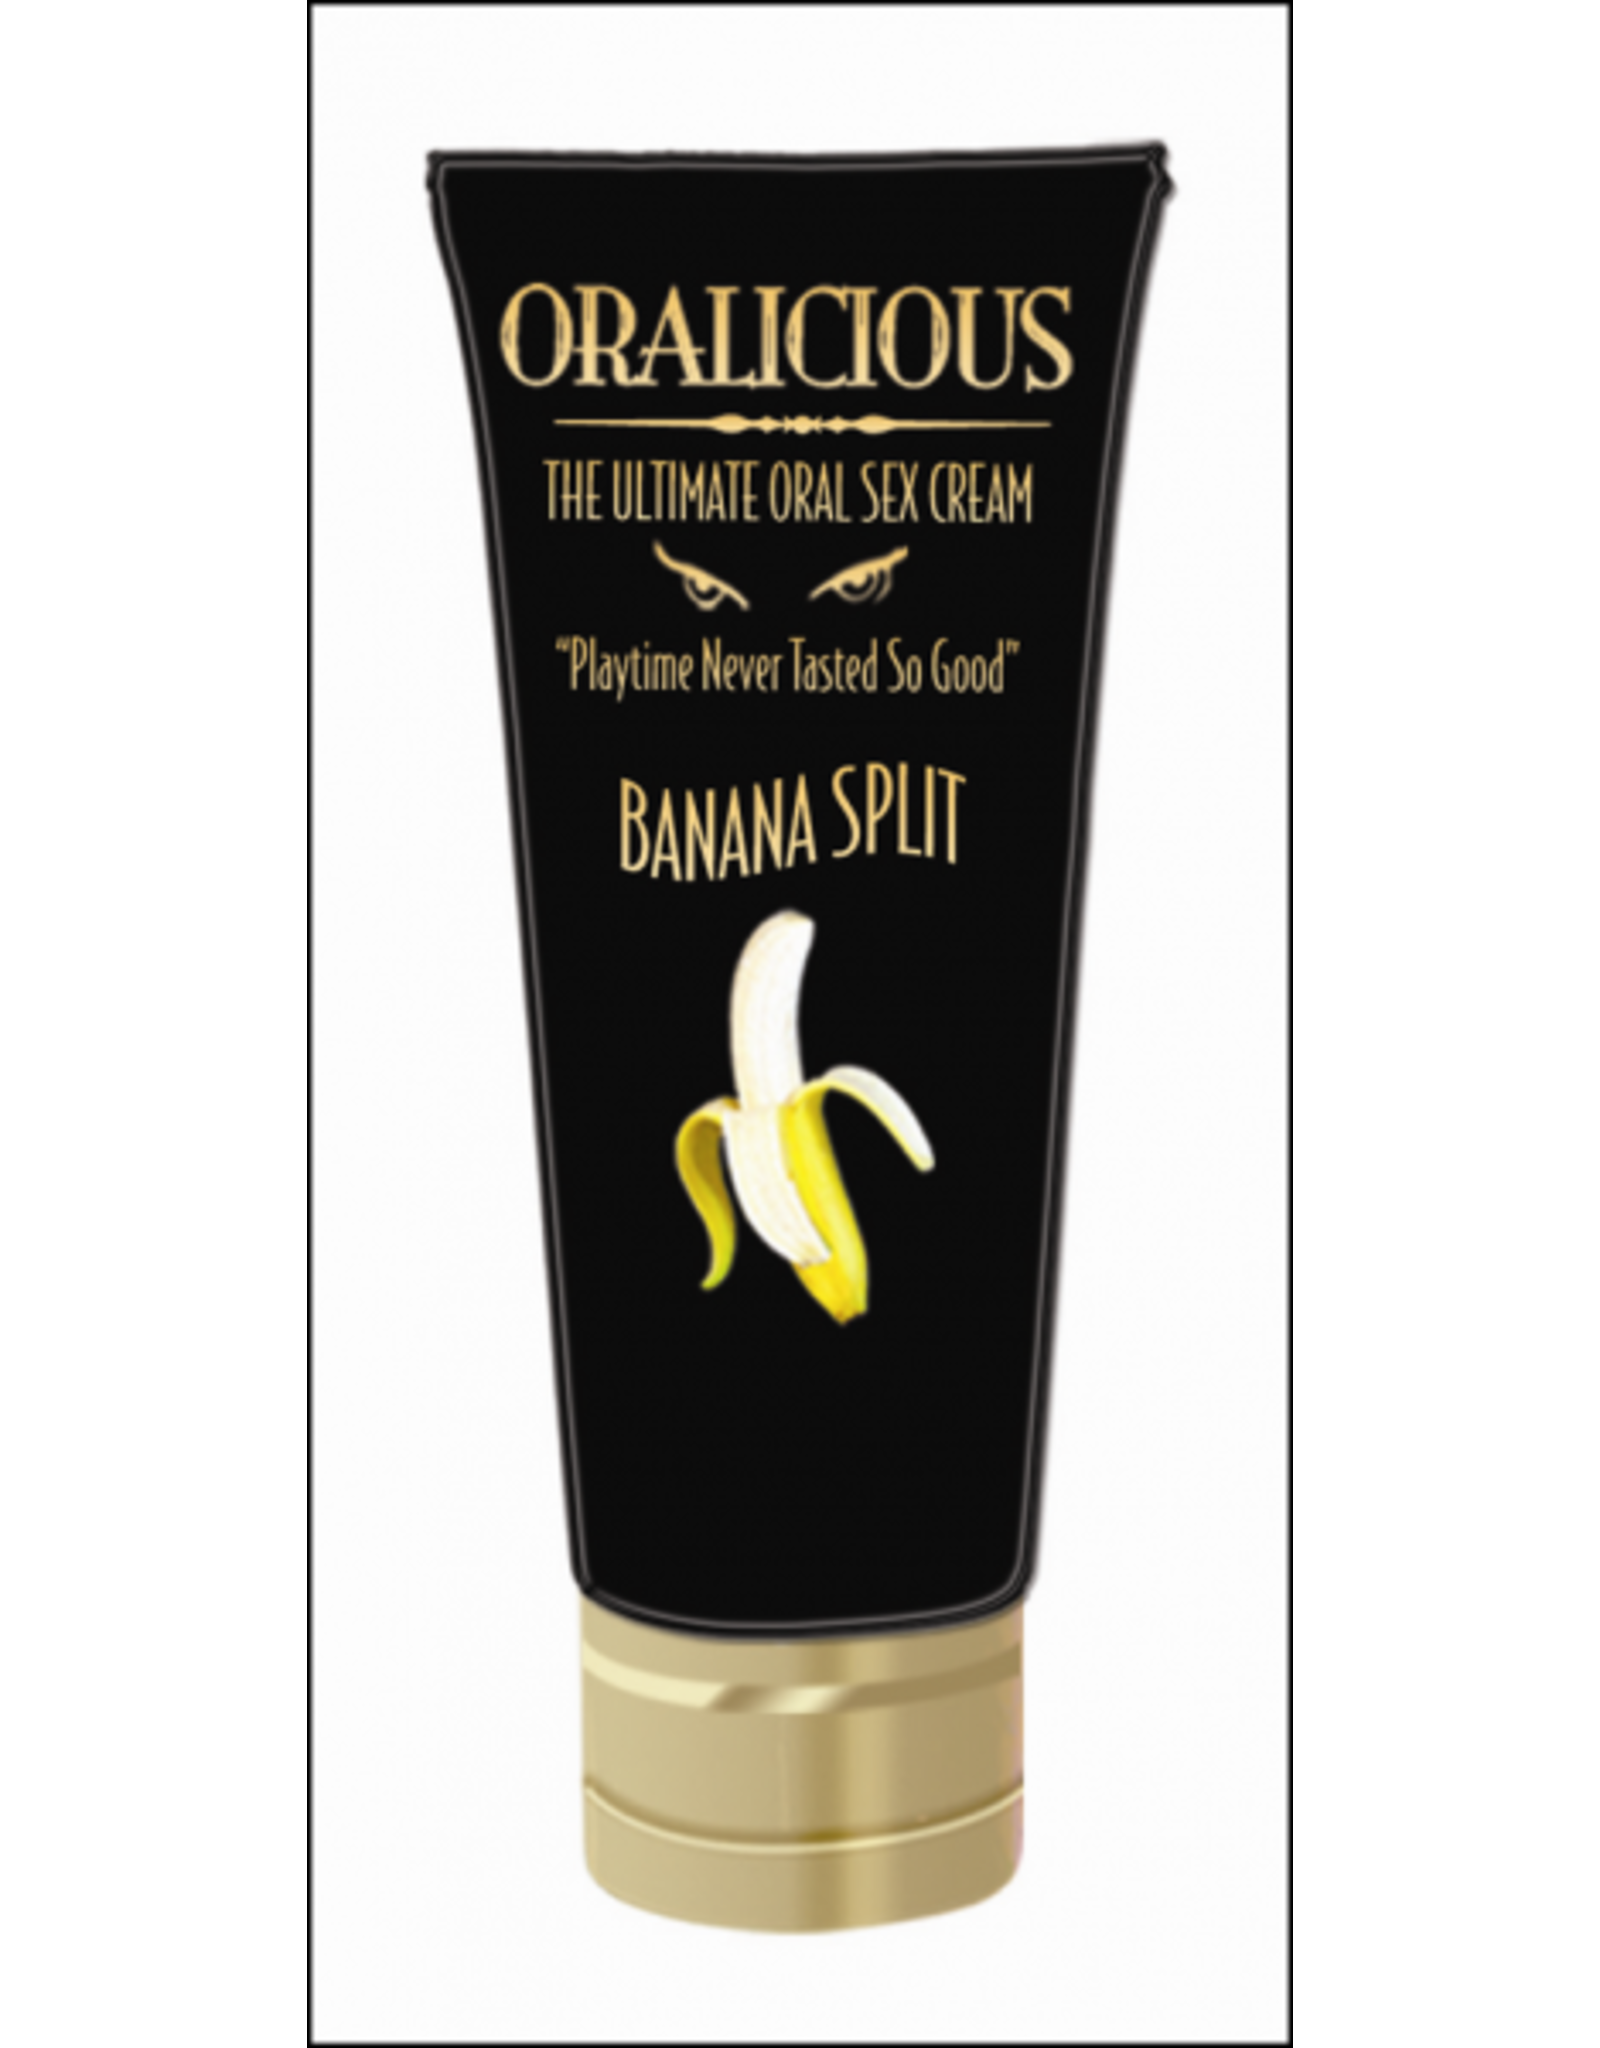 Hott Products Oralicious - Ultimate Oral Sex Cream (Banana Split)